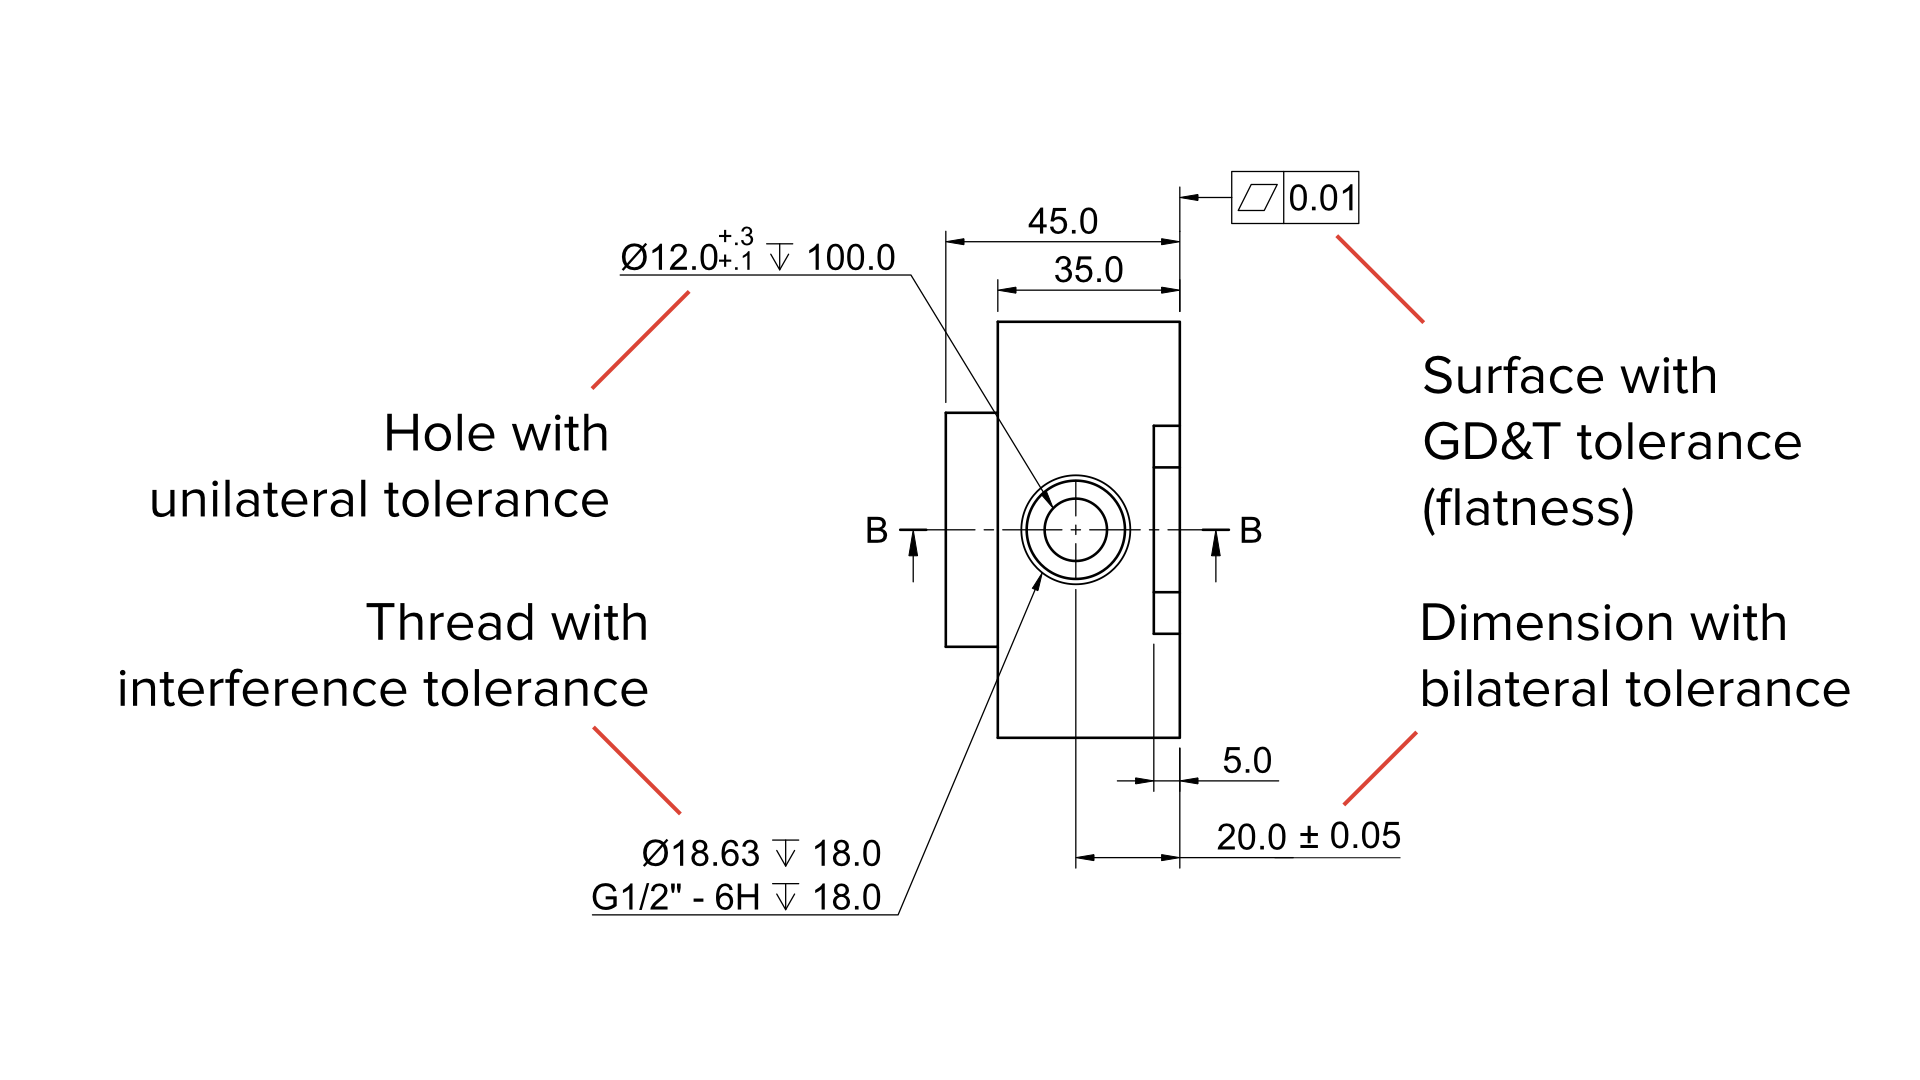 Tolerances defined using different formats